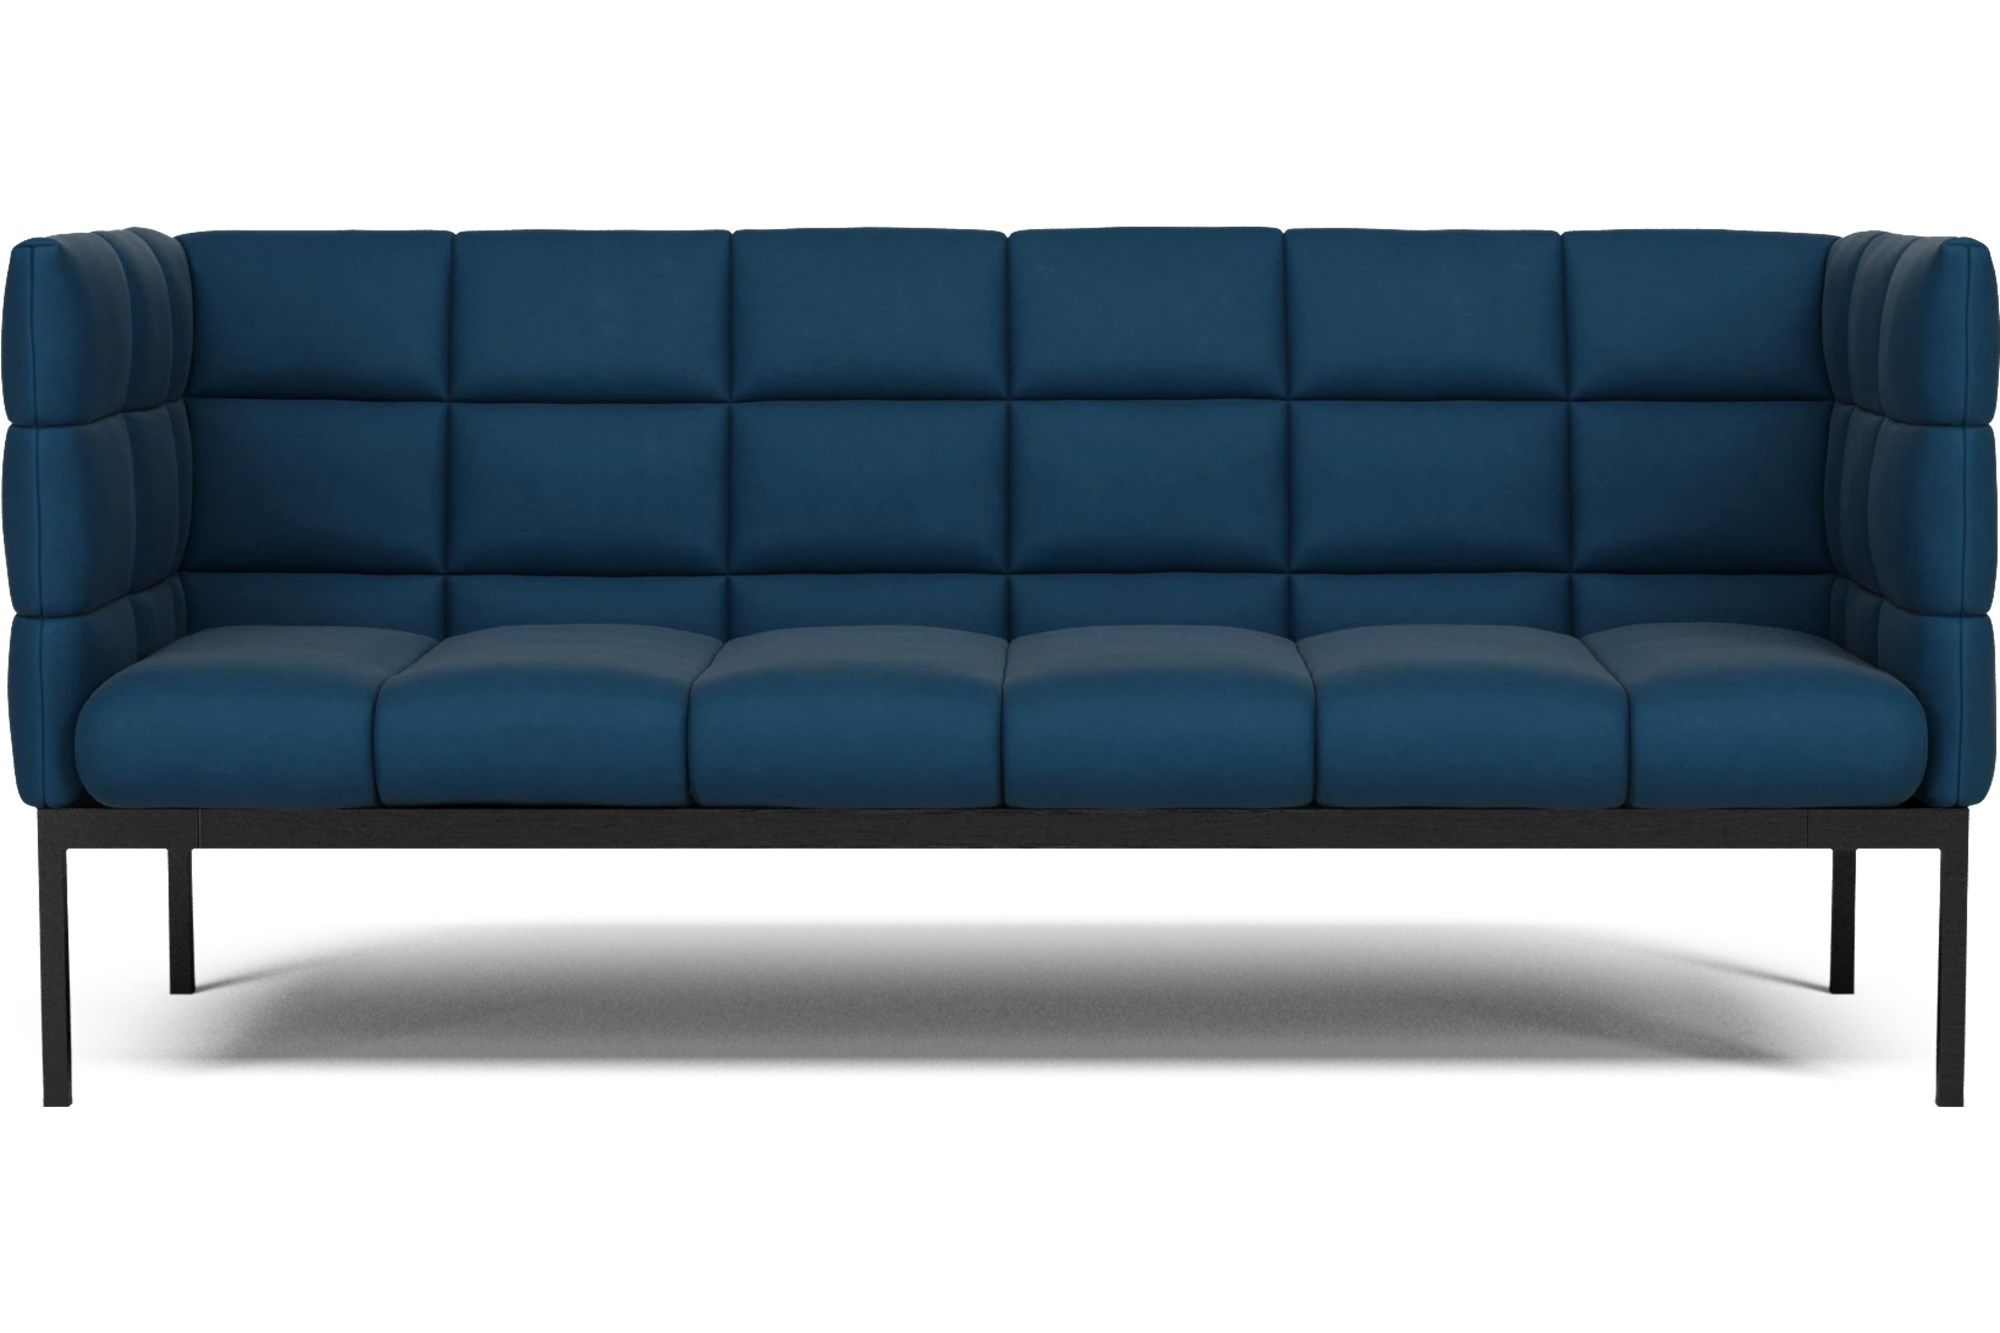 Barber Osgerby Sofa Collection Salone 2014 by A Osio